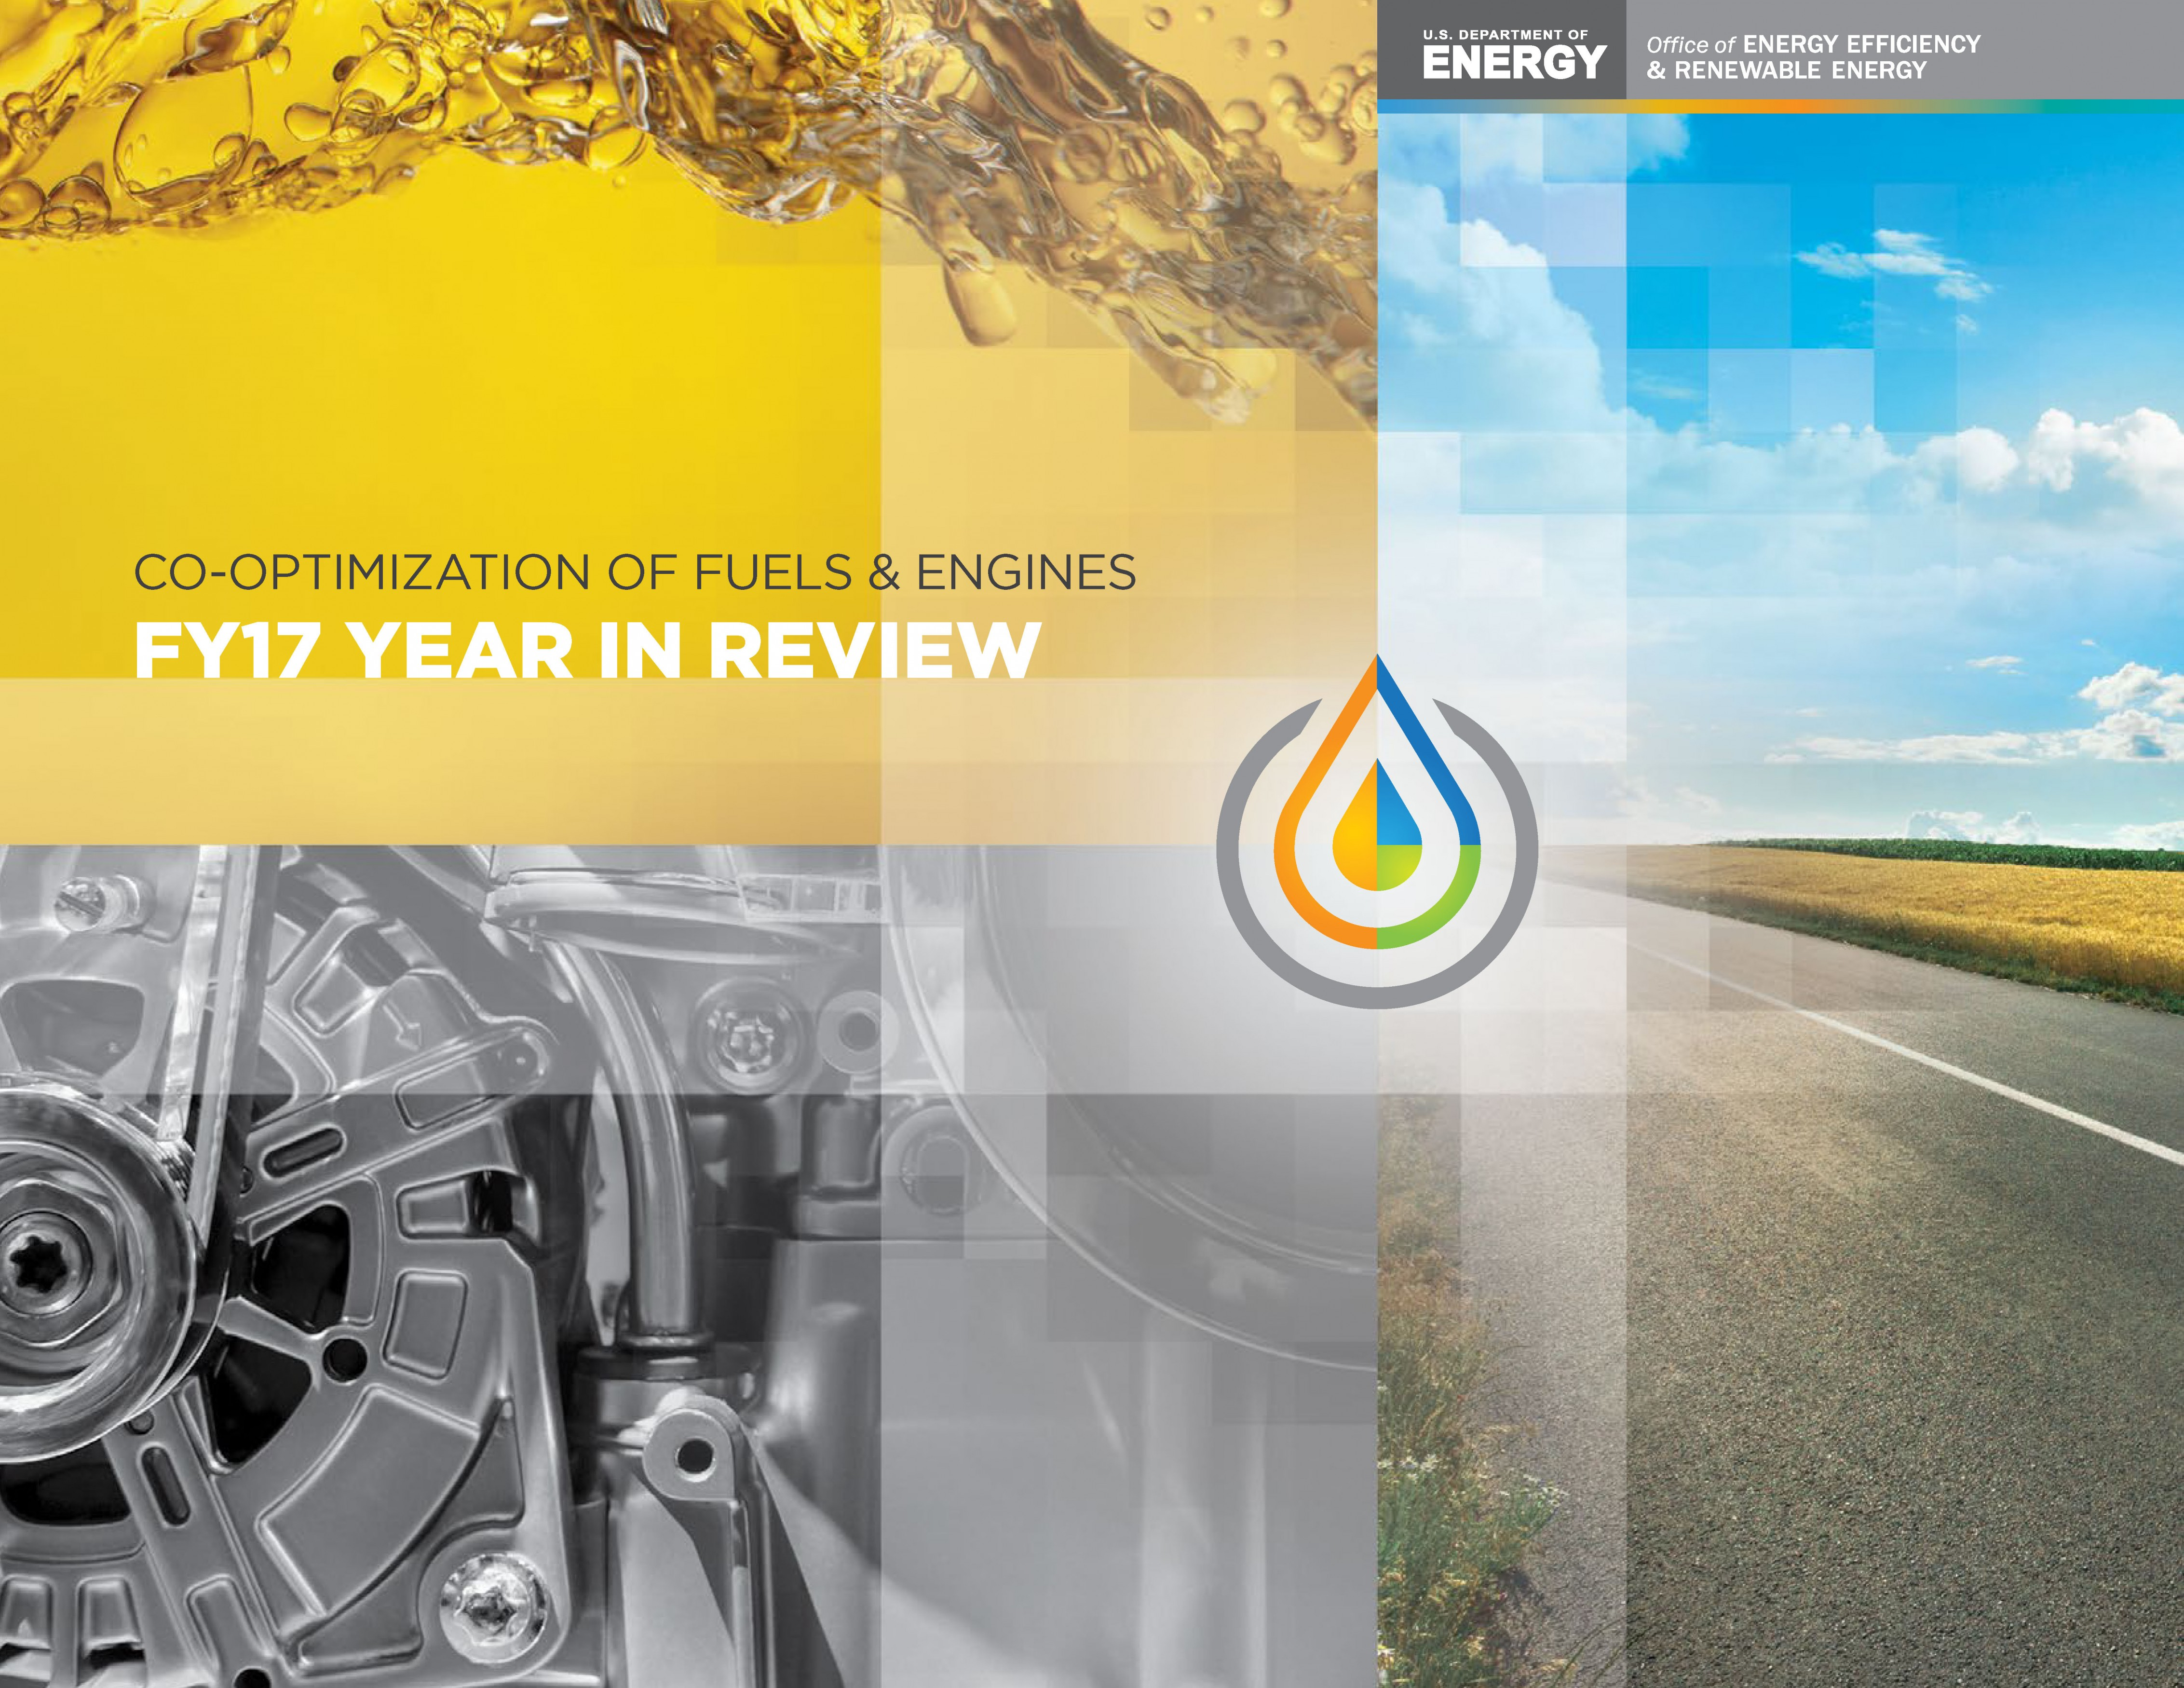 Co-Optima Year in Review Report highlights 2017 accomplishments